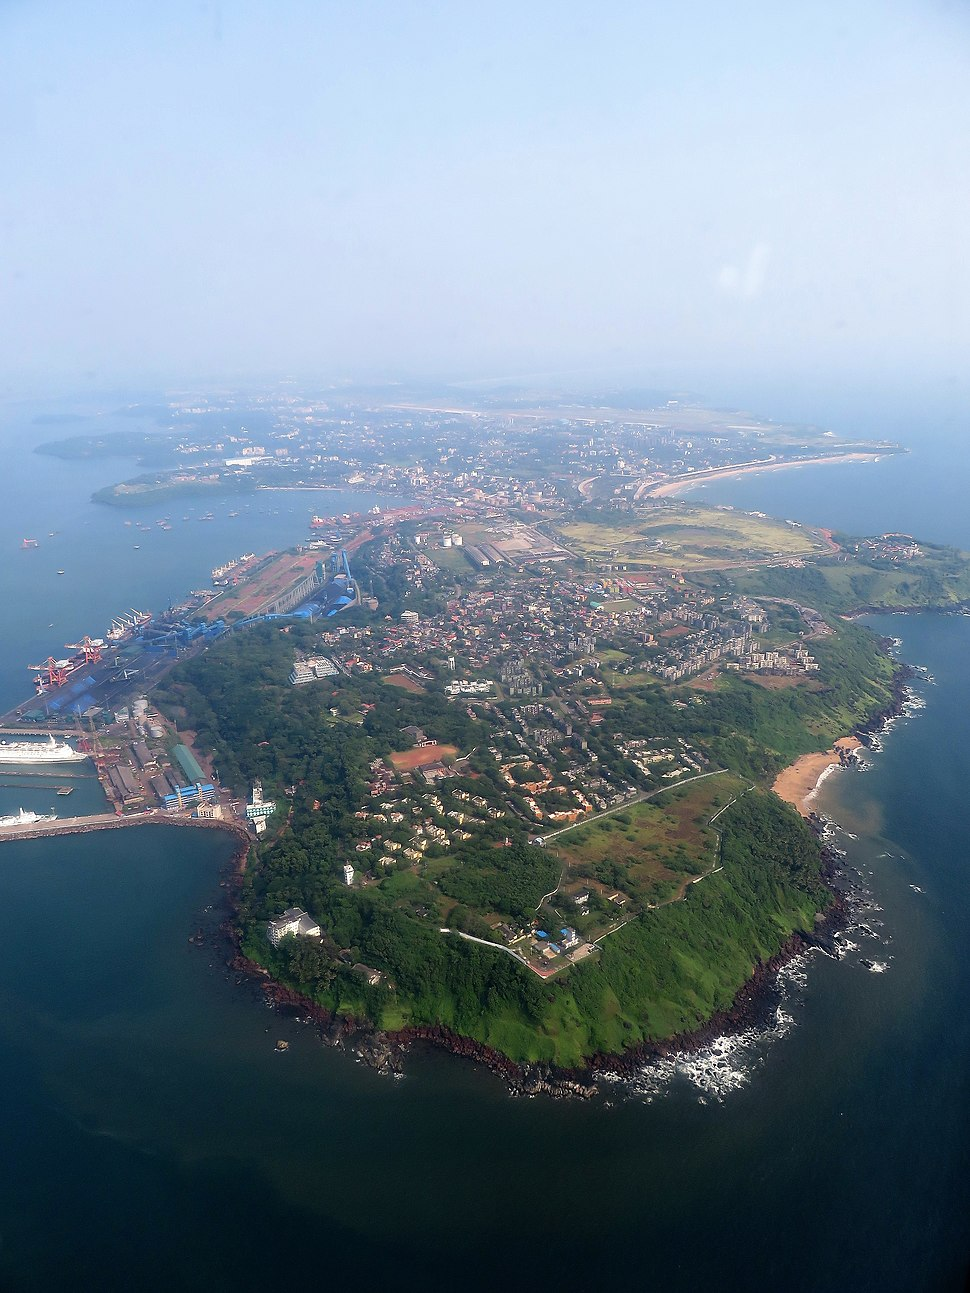 Picture of GOA taken from an air craft's window